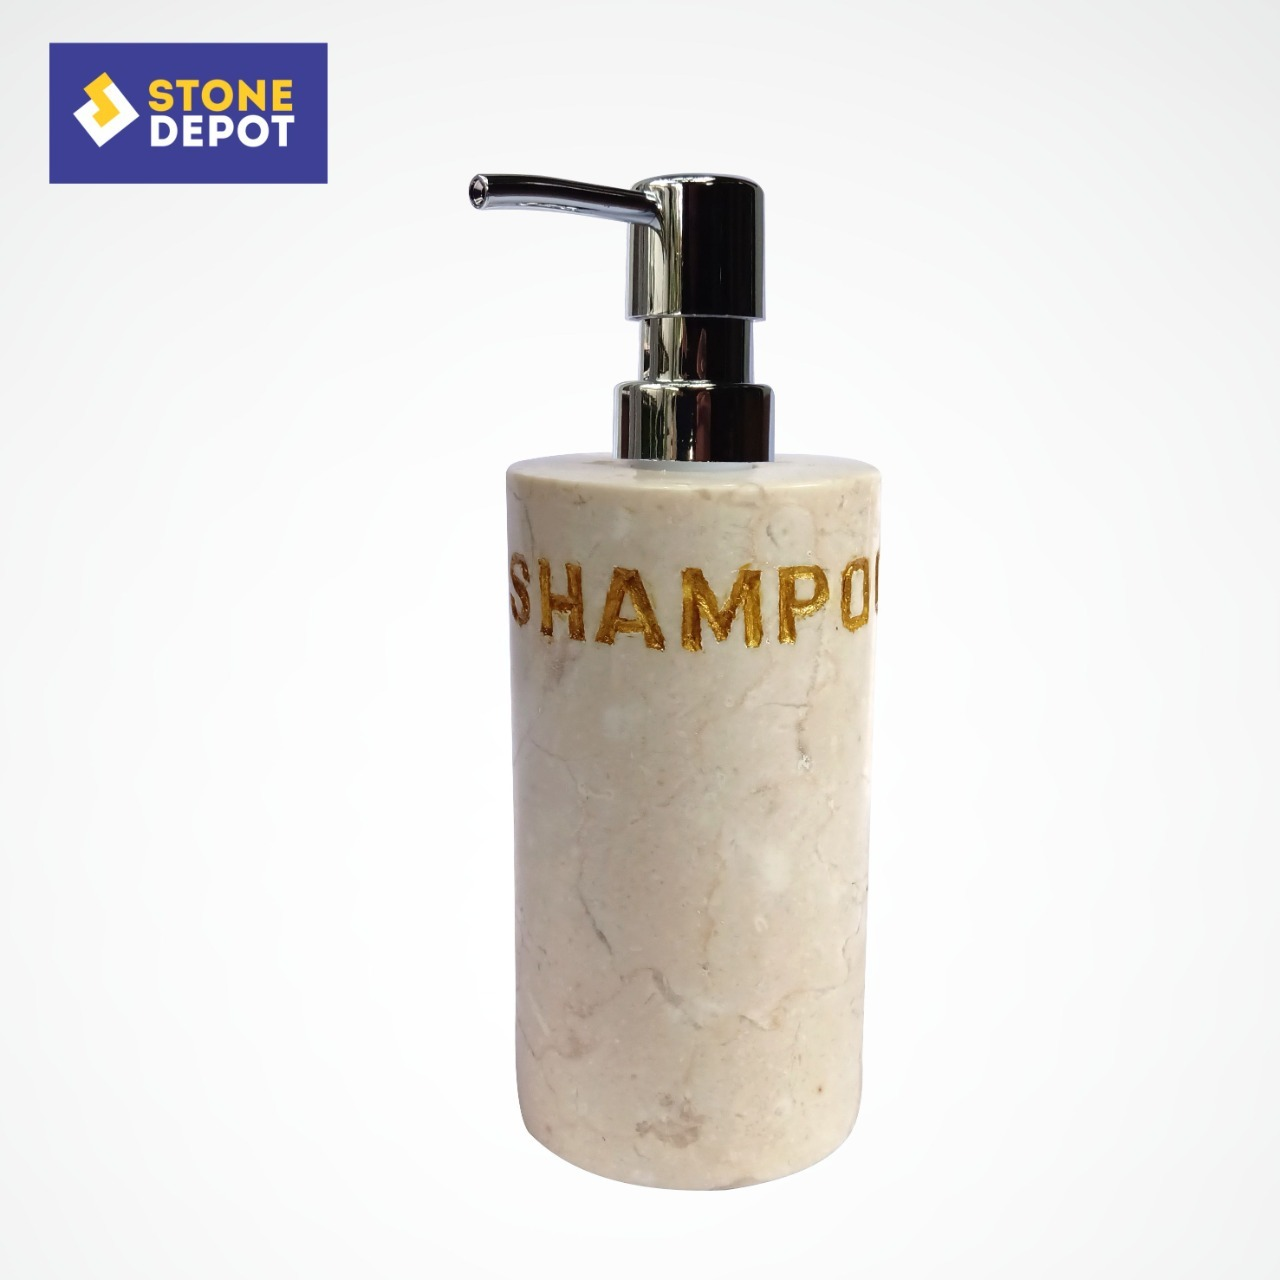 Bali Beige Marble Shampoo Dispenser 200 ml